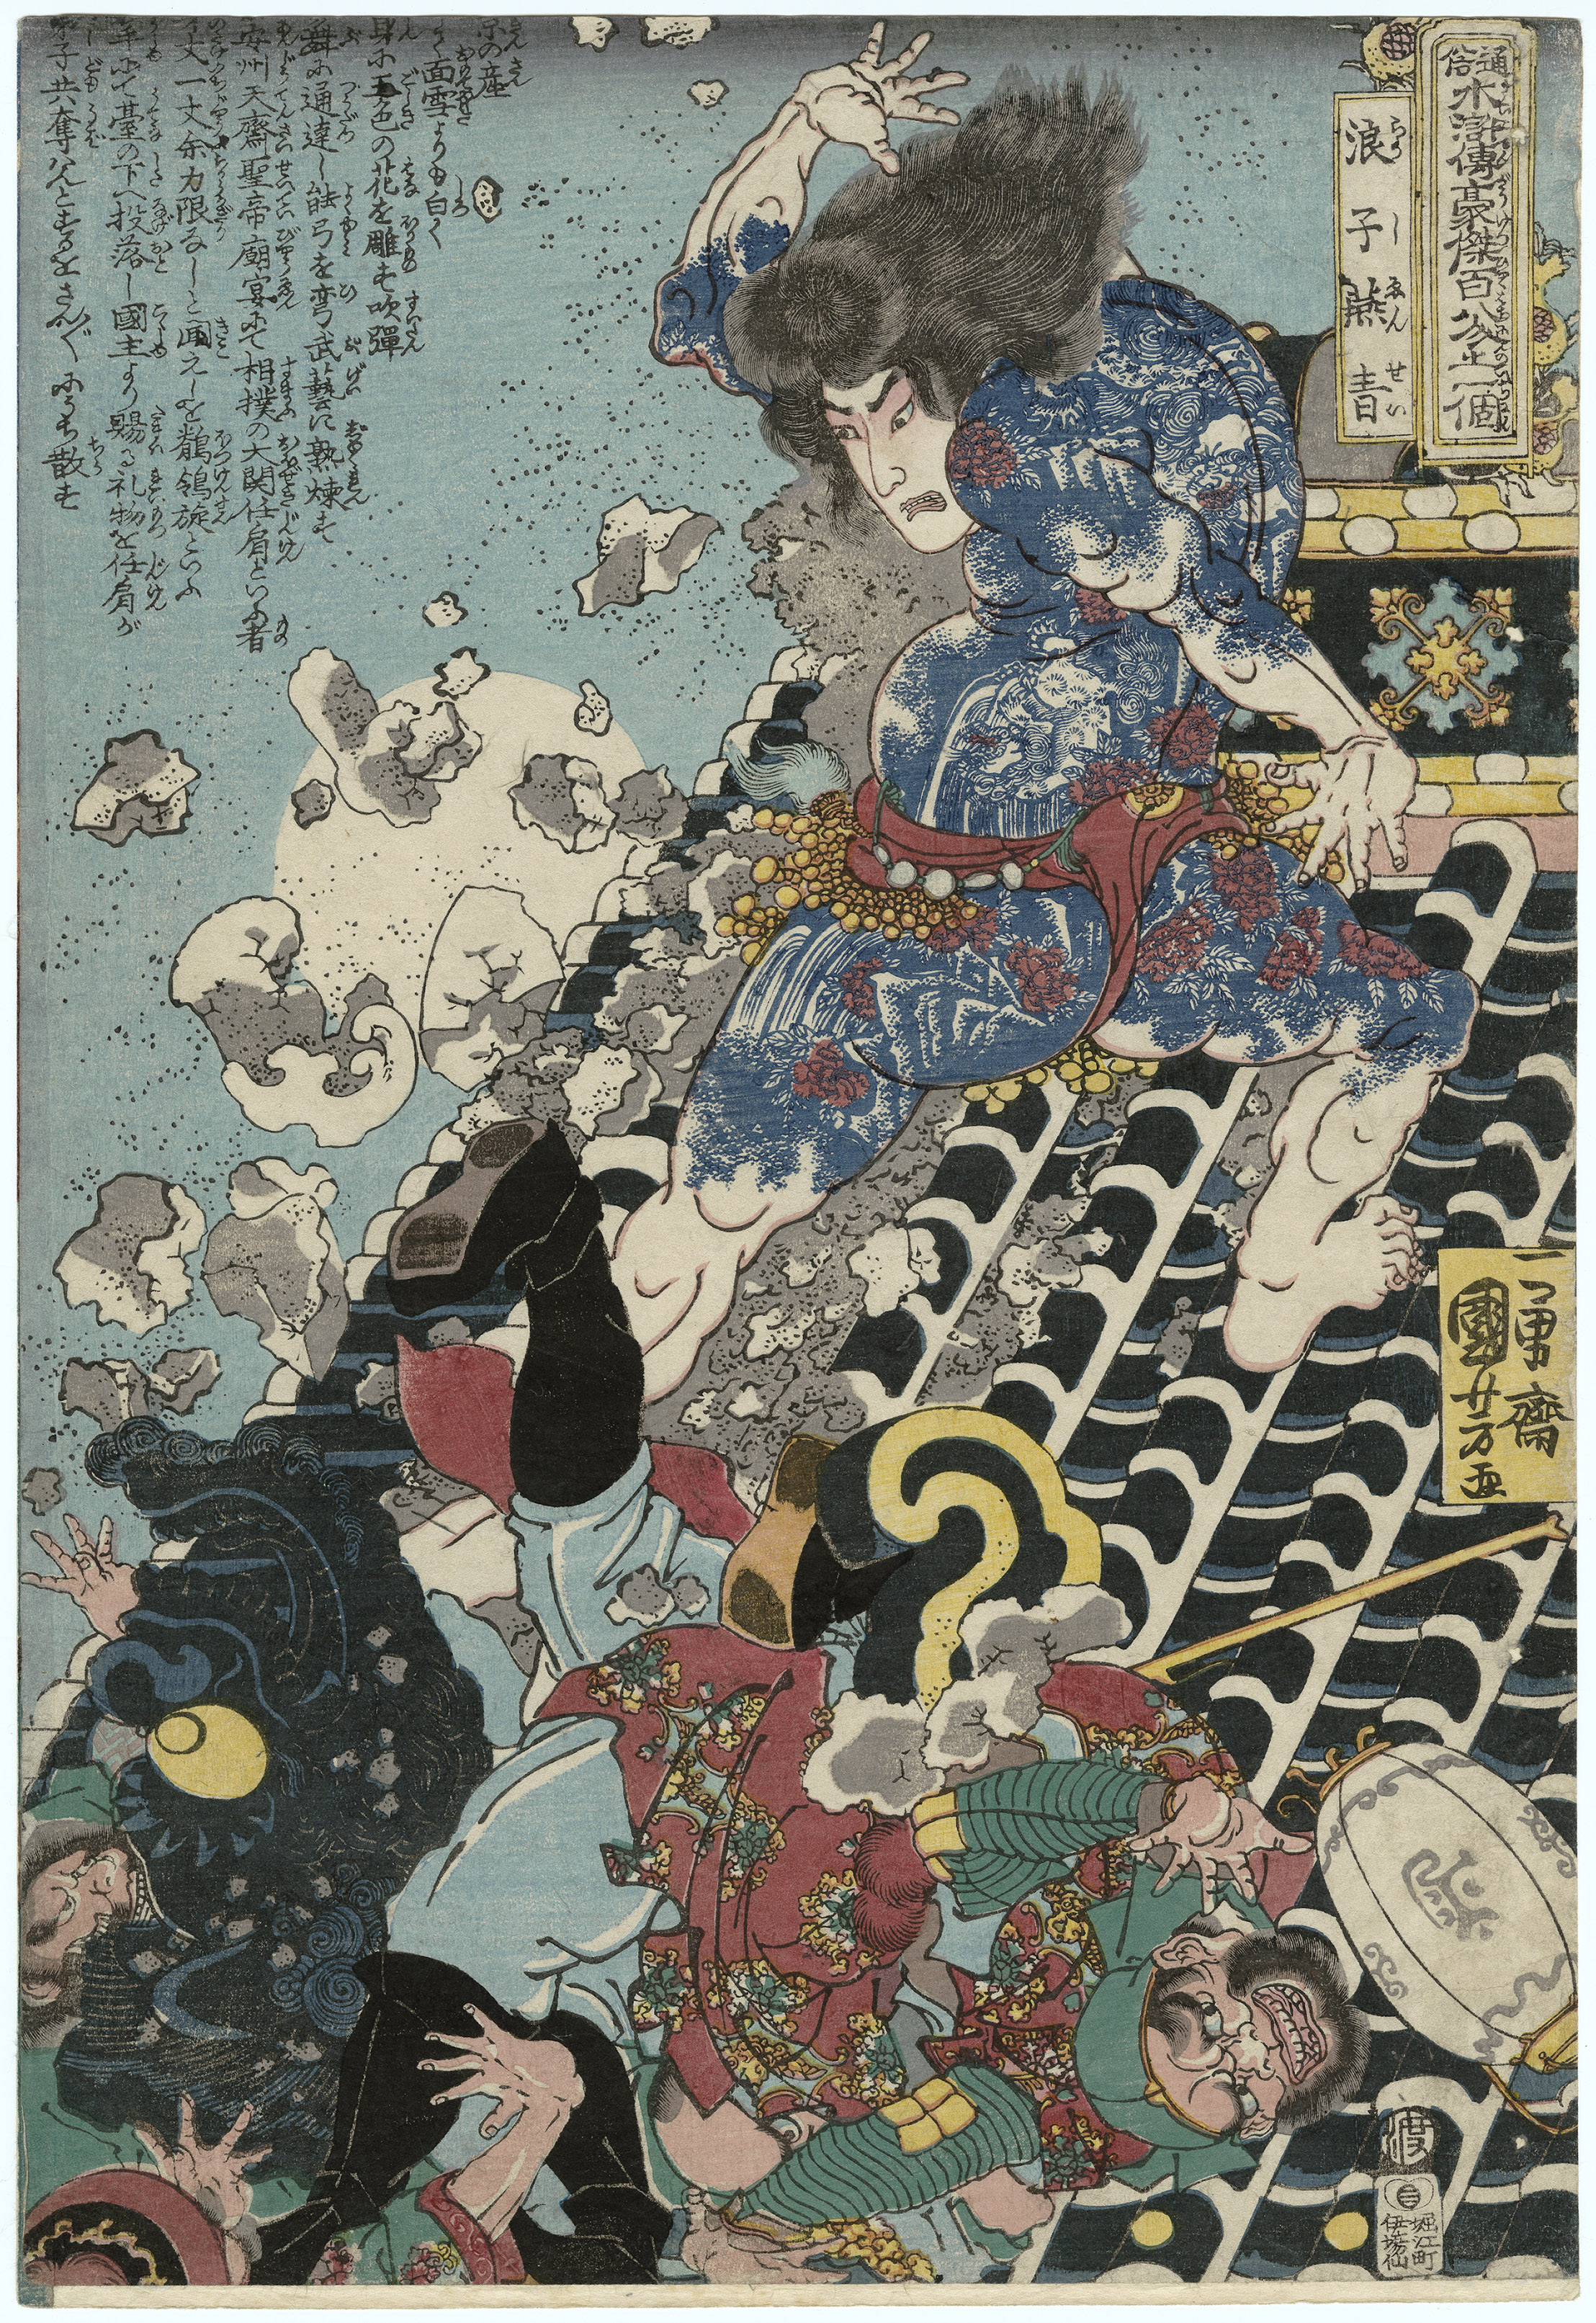 """Yan Qing, the Graceful"" is adorned with tattoos of lions, peonies, and waterfalls in this print from the series ""108 Heroes of the Popular Water Margin"" by Utagawa Kuniyoshi, c. late 1820s and reprinted around 1843-47. © <a href=""http://www.mfa.org/"">Museum of Fine Arts, Boston</a>."